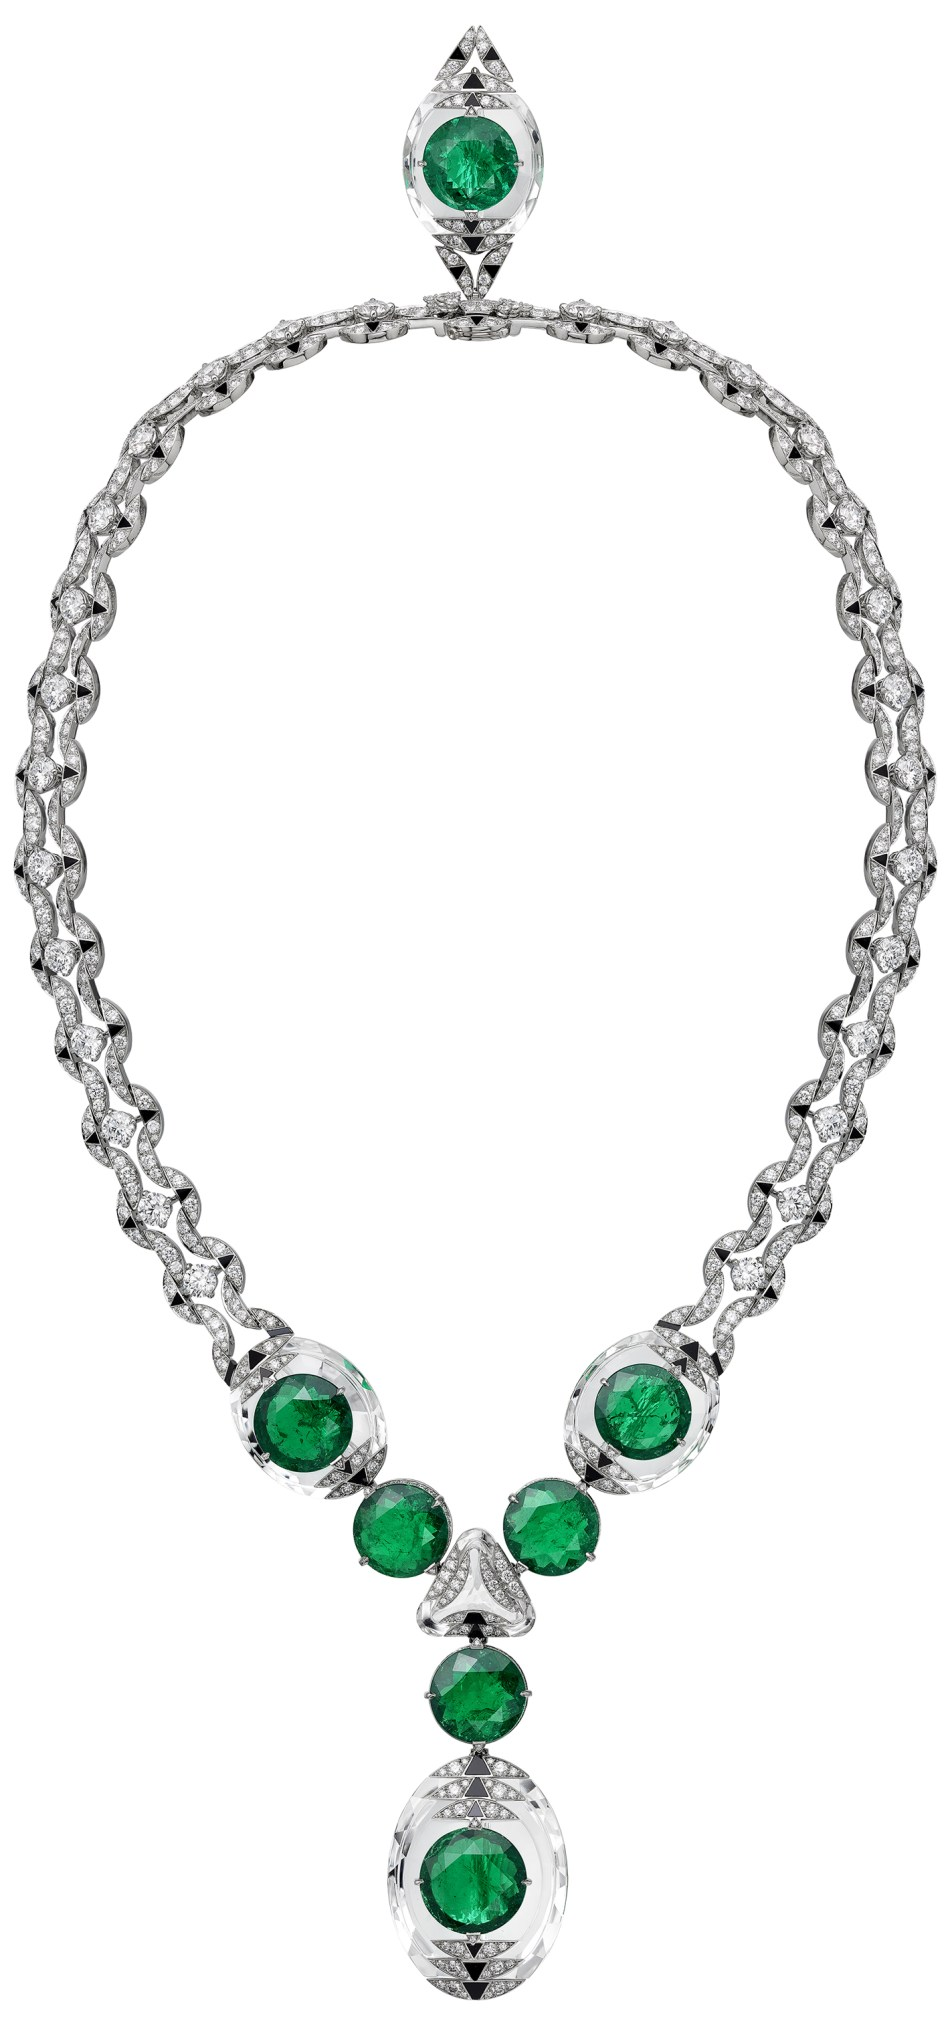 Cartier Magnitude High Jewellery Collection. Théia Necklace